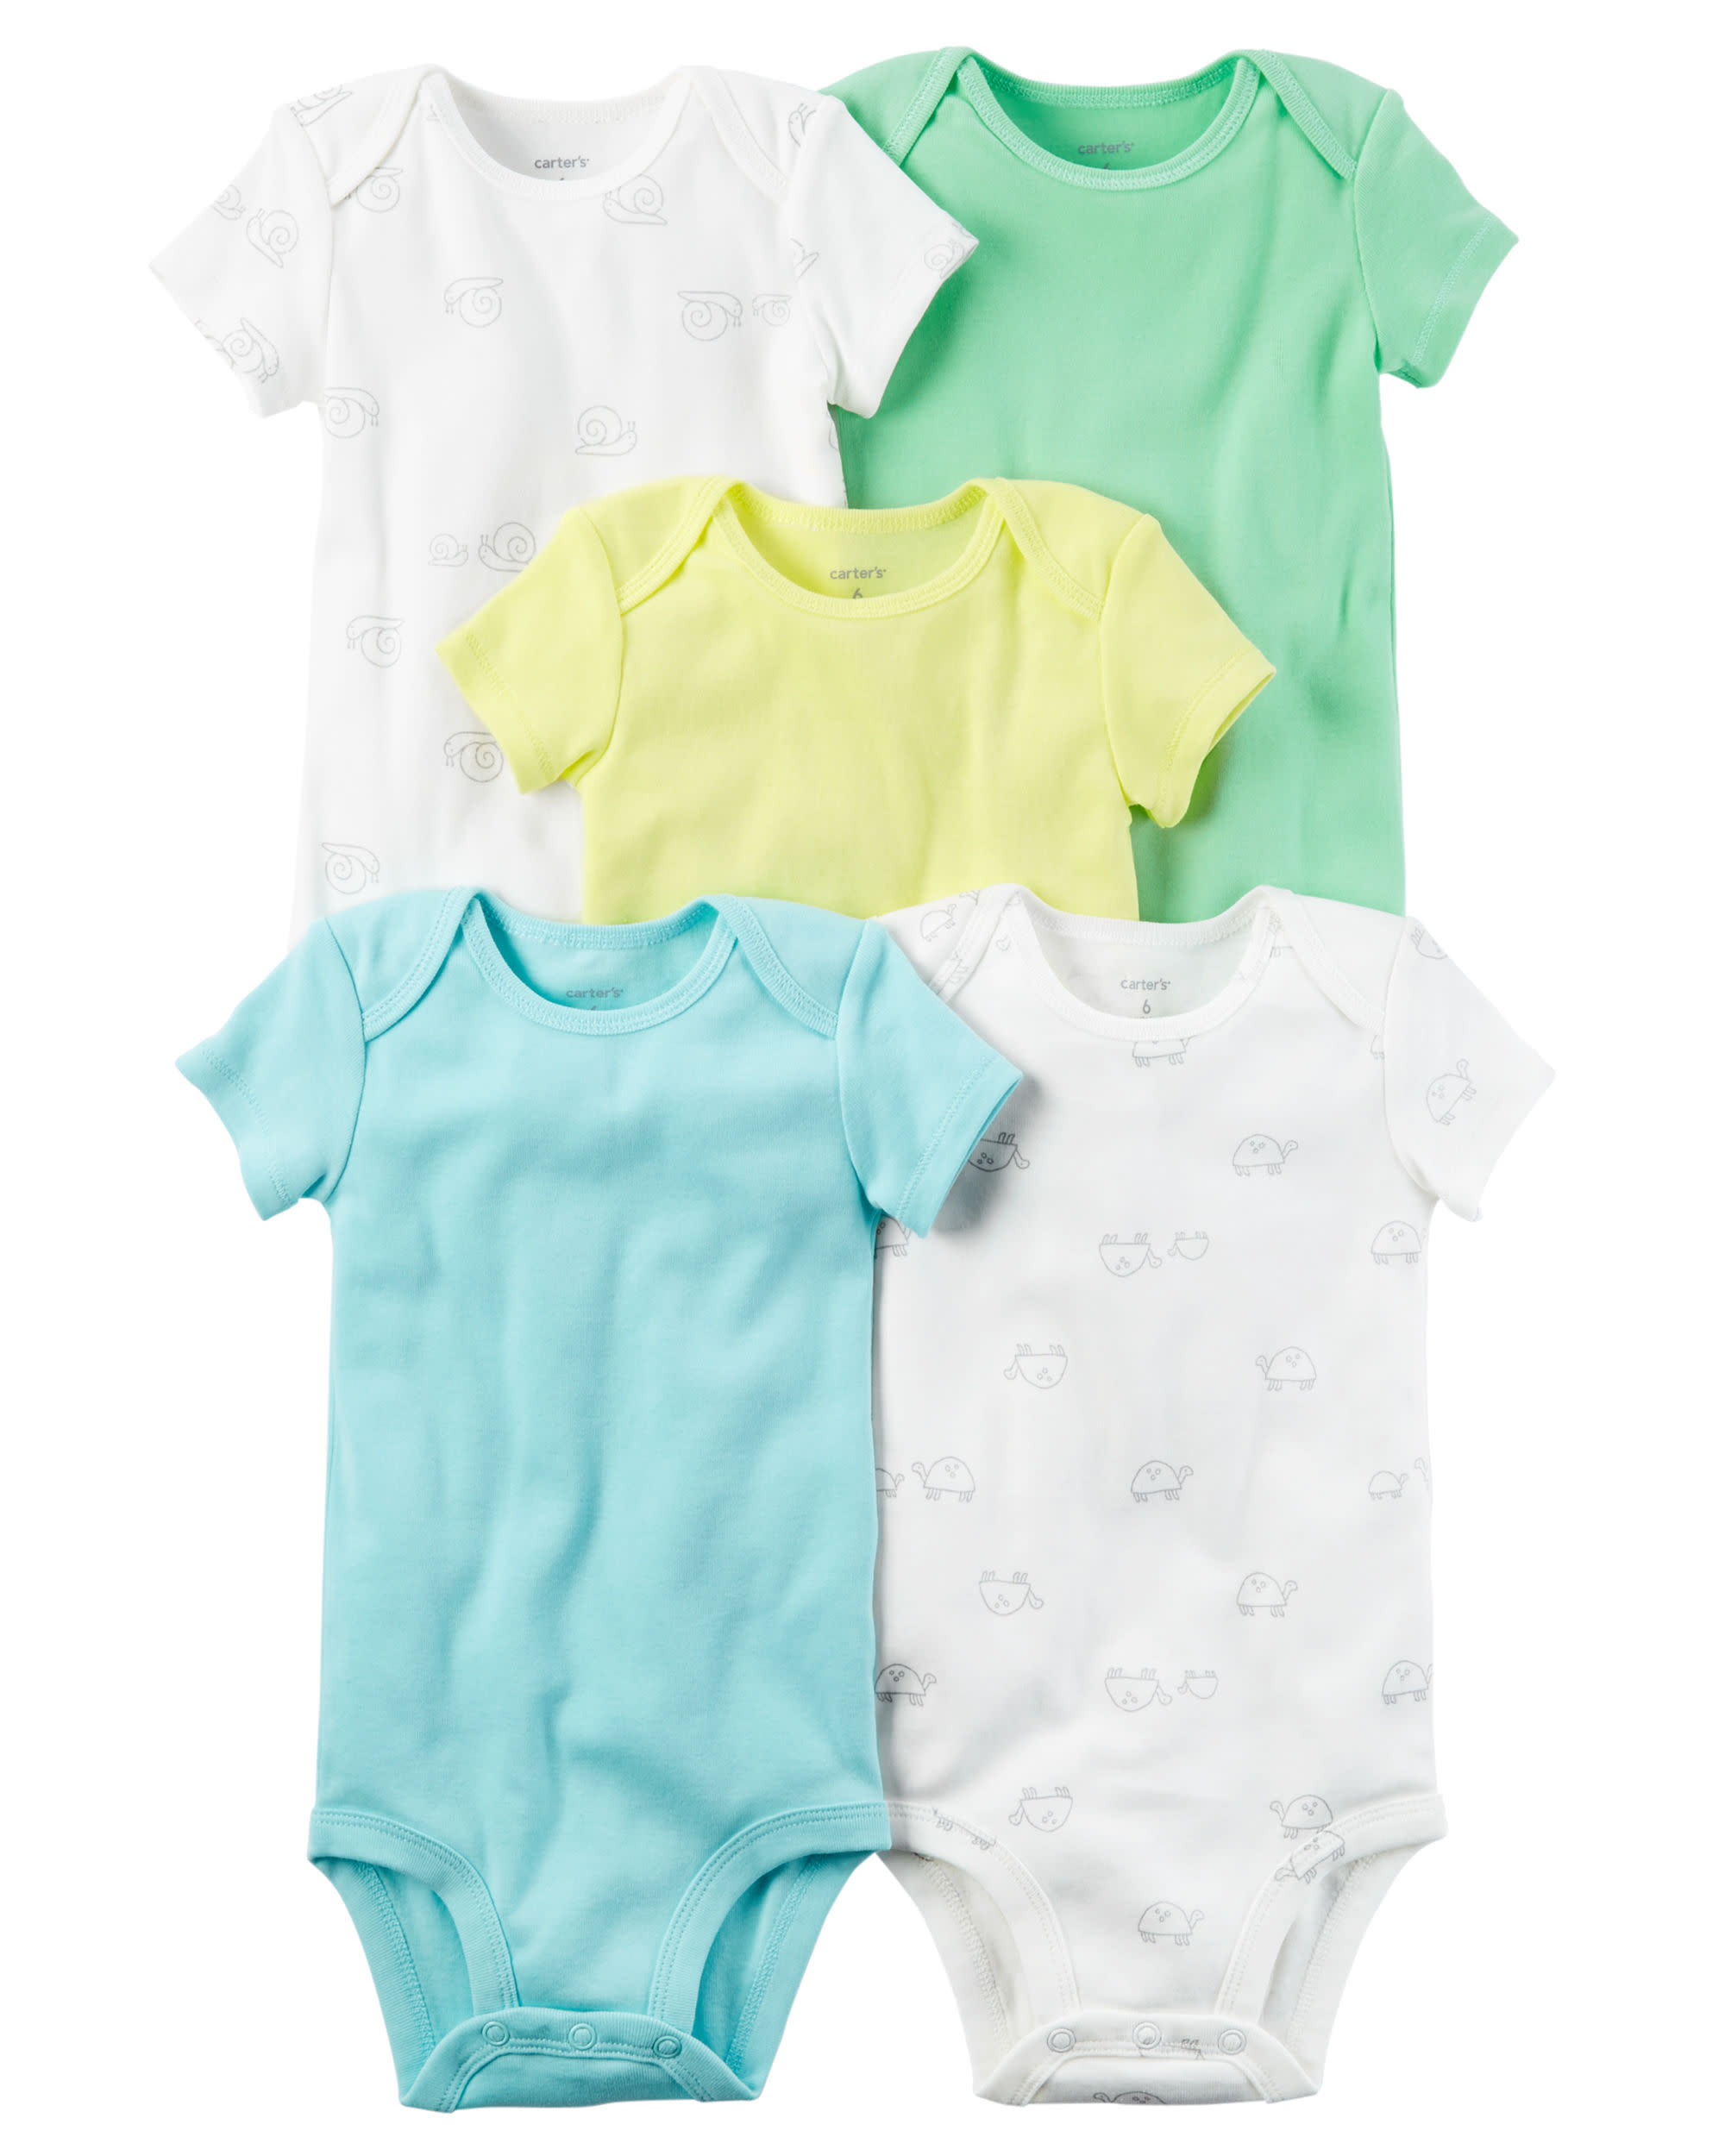 The Best Newborn Baby Clothes & Outfits to Stock Up On